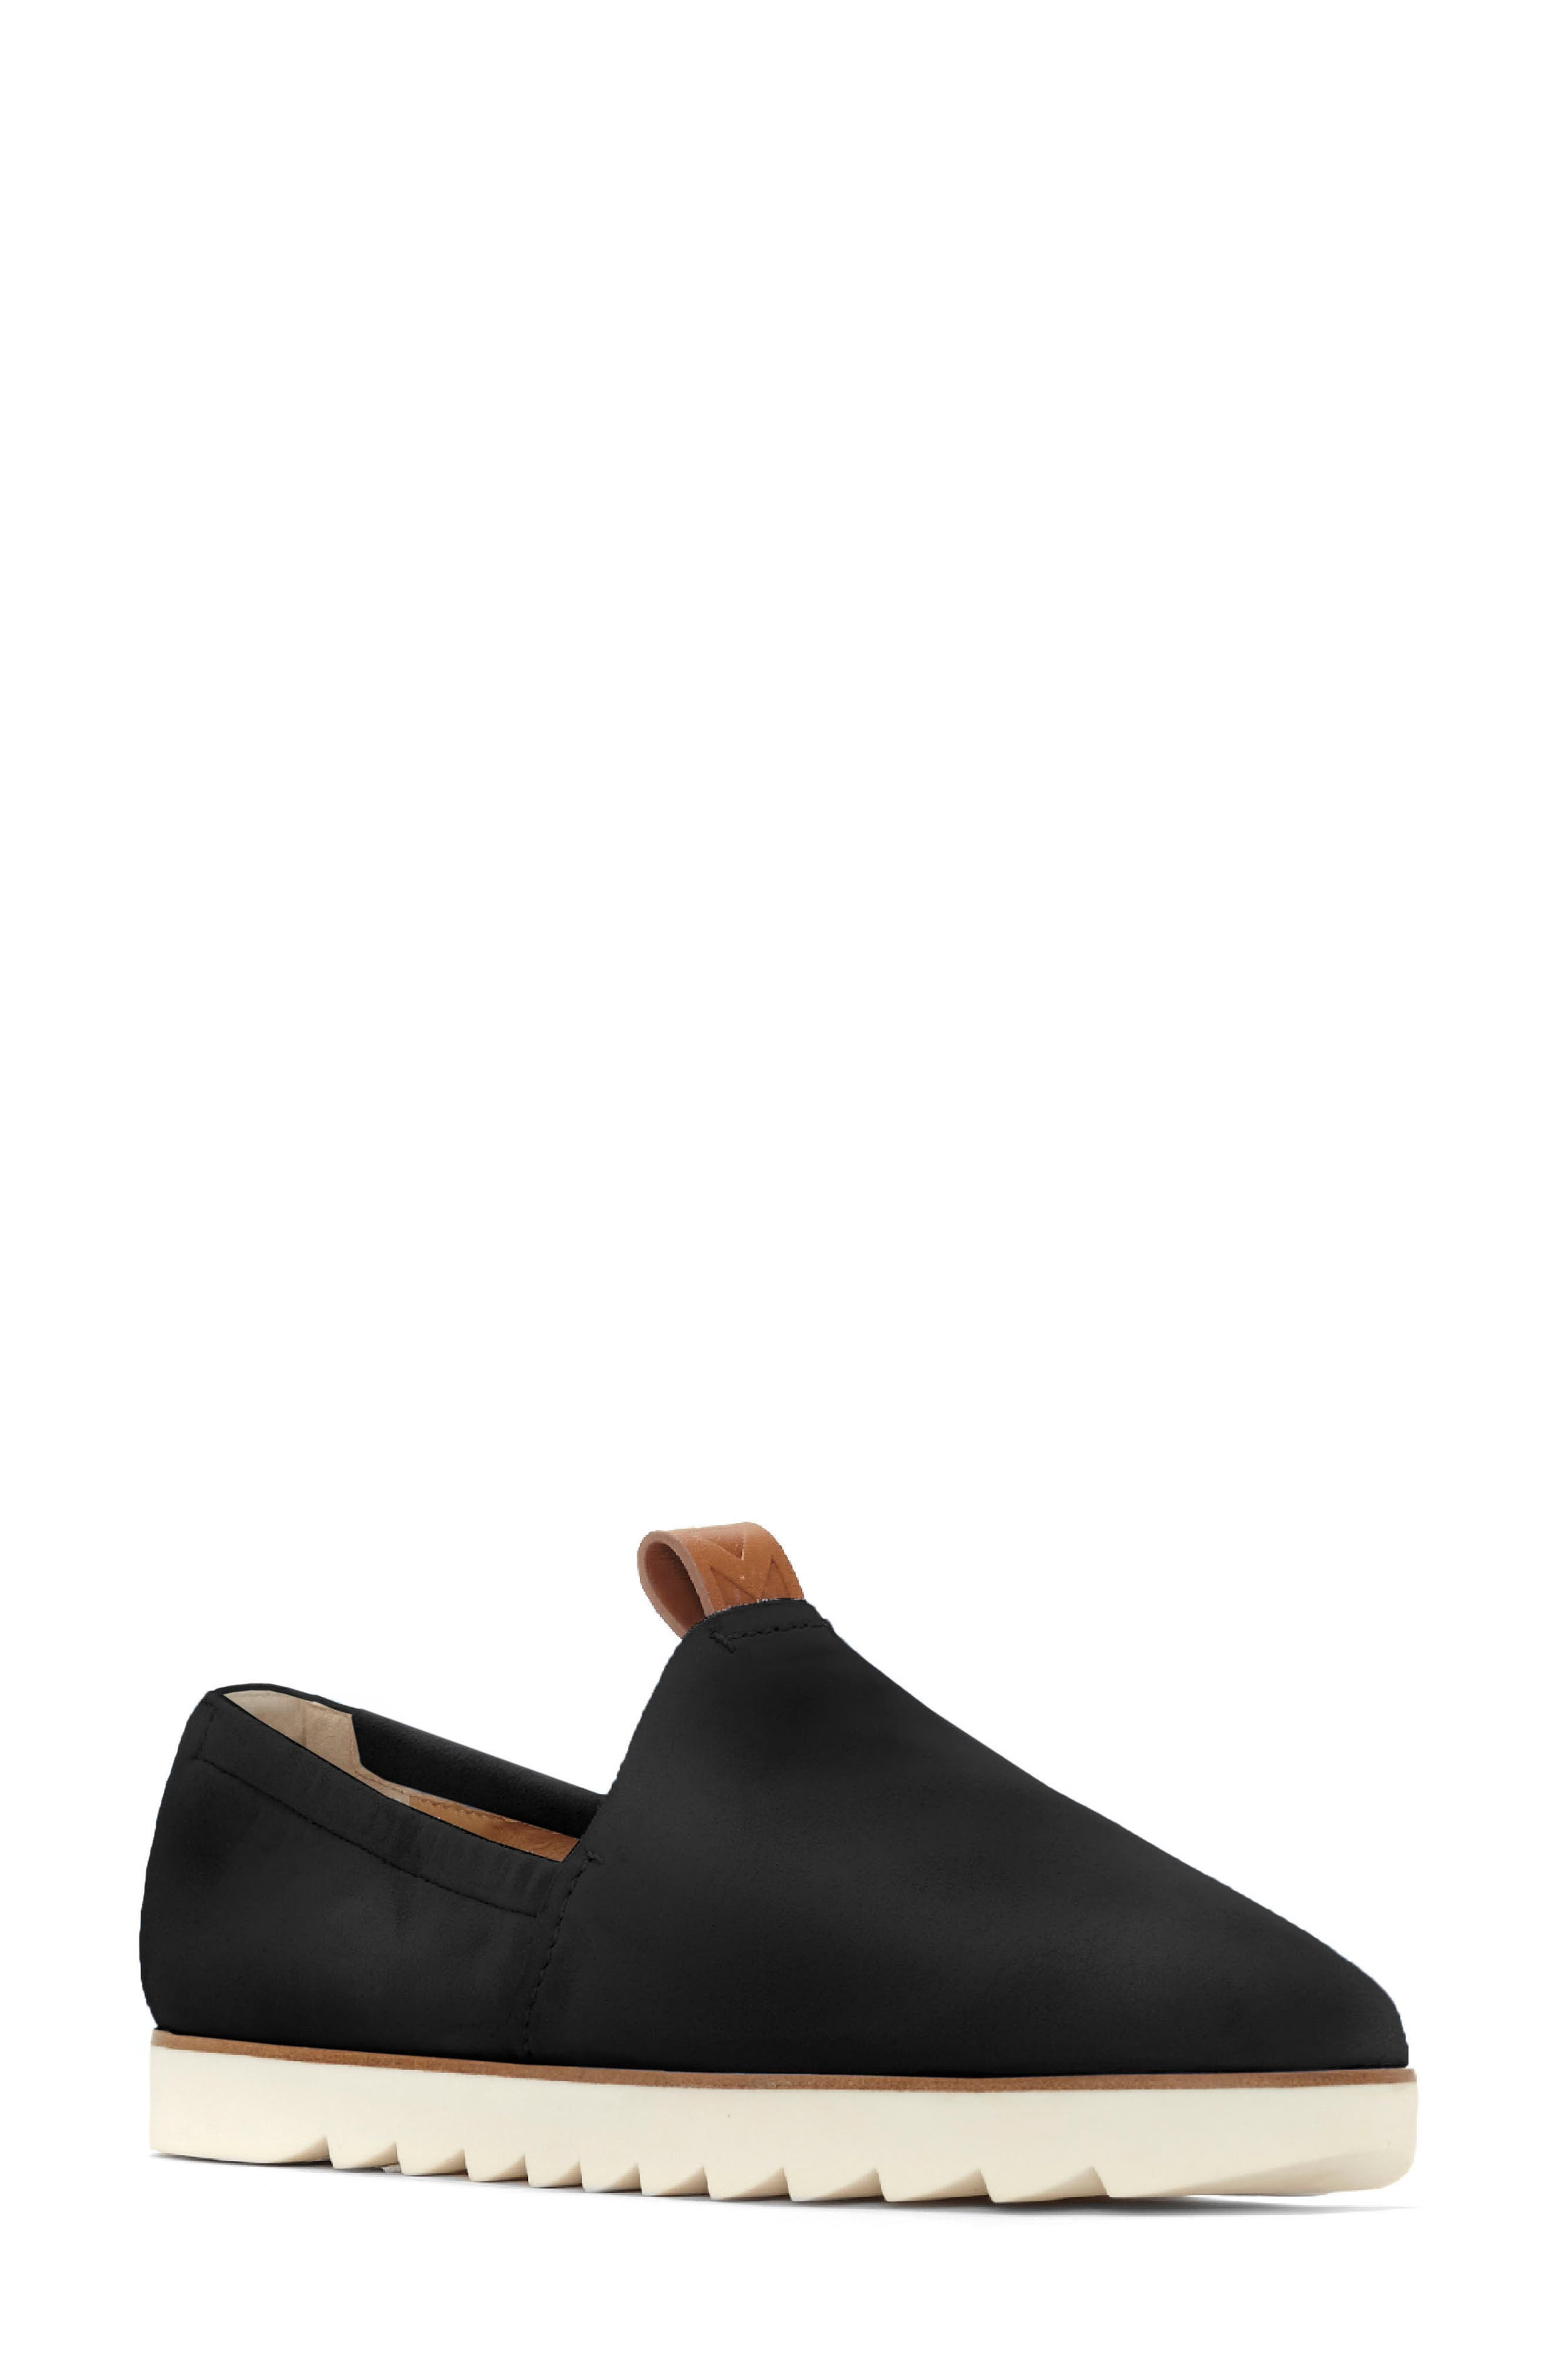 Clelia Slip-On Sneaker,                         Main,                         color, 001